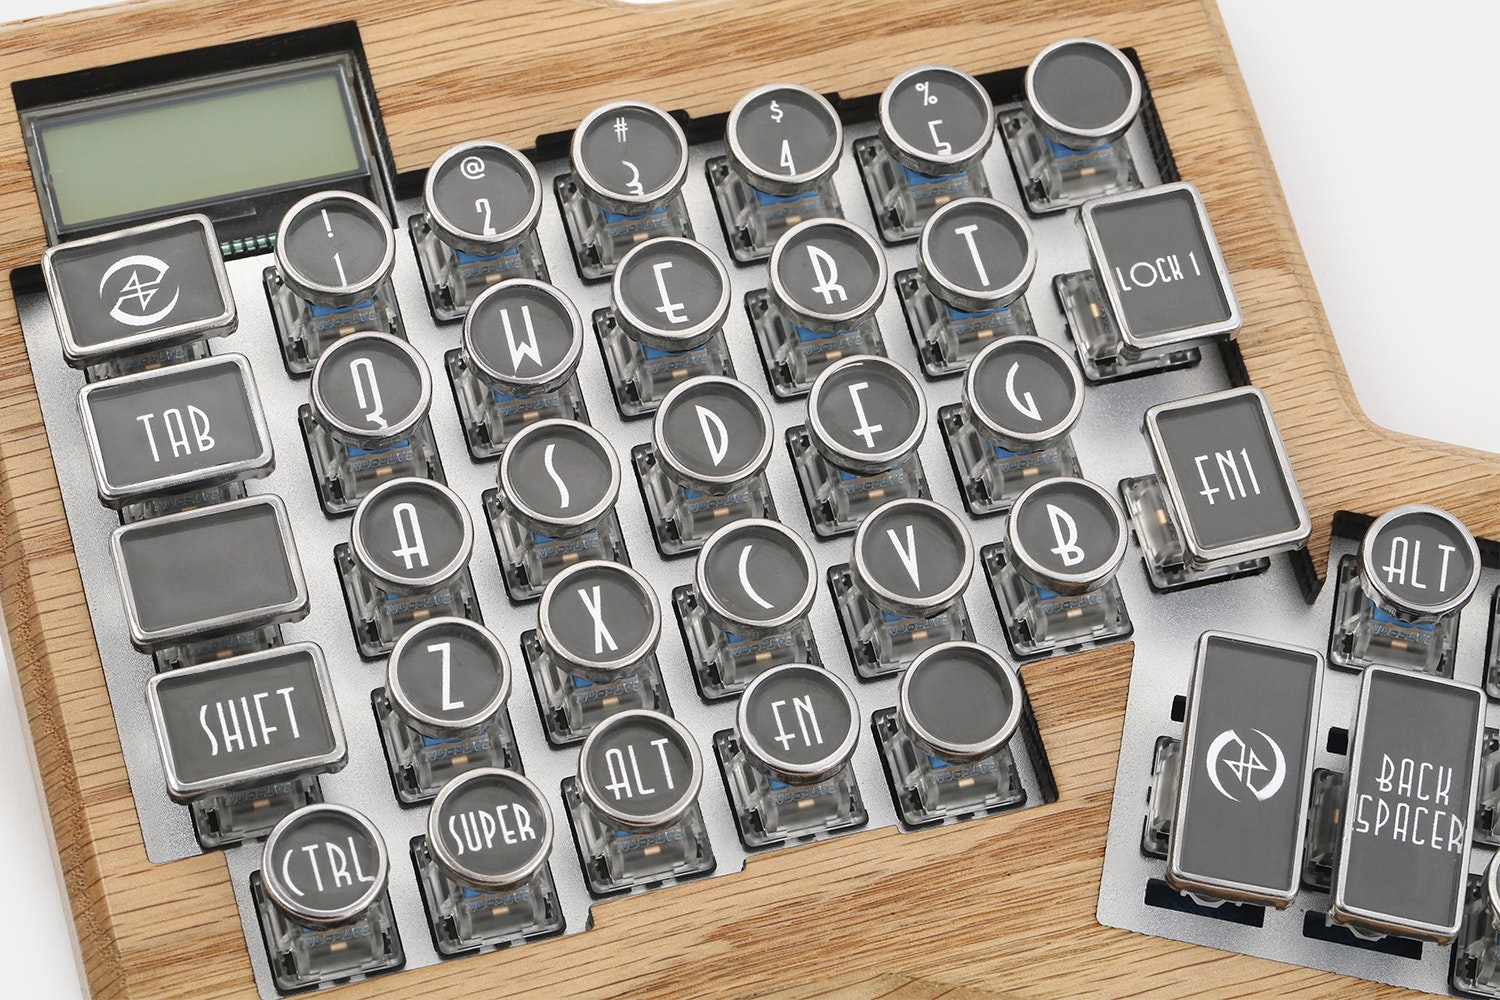 Datamancer Typewriter Keycap Set